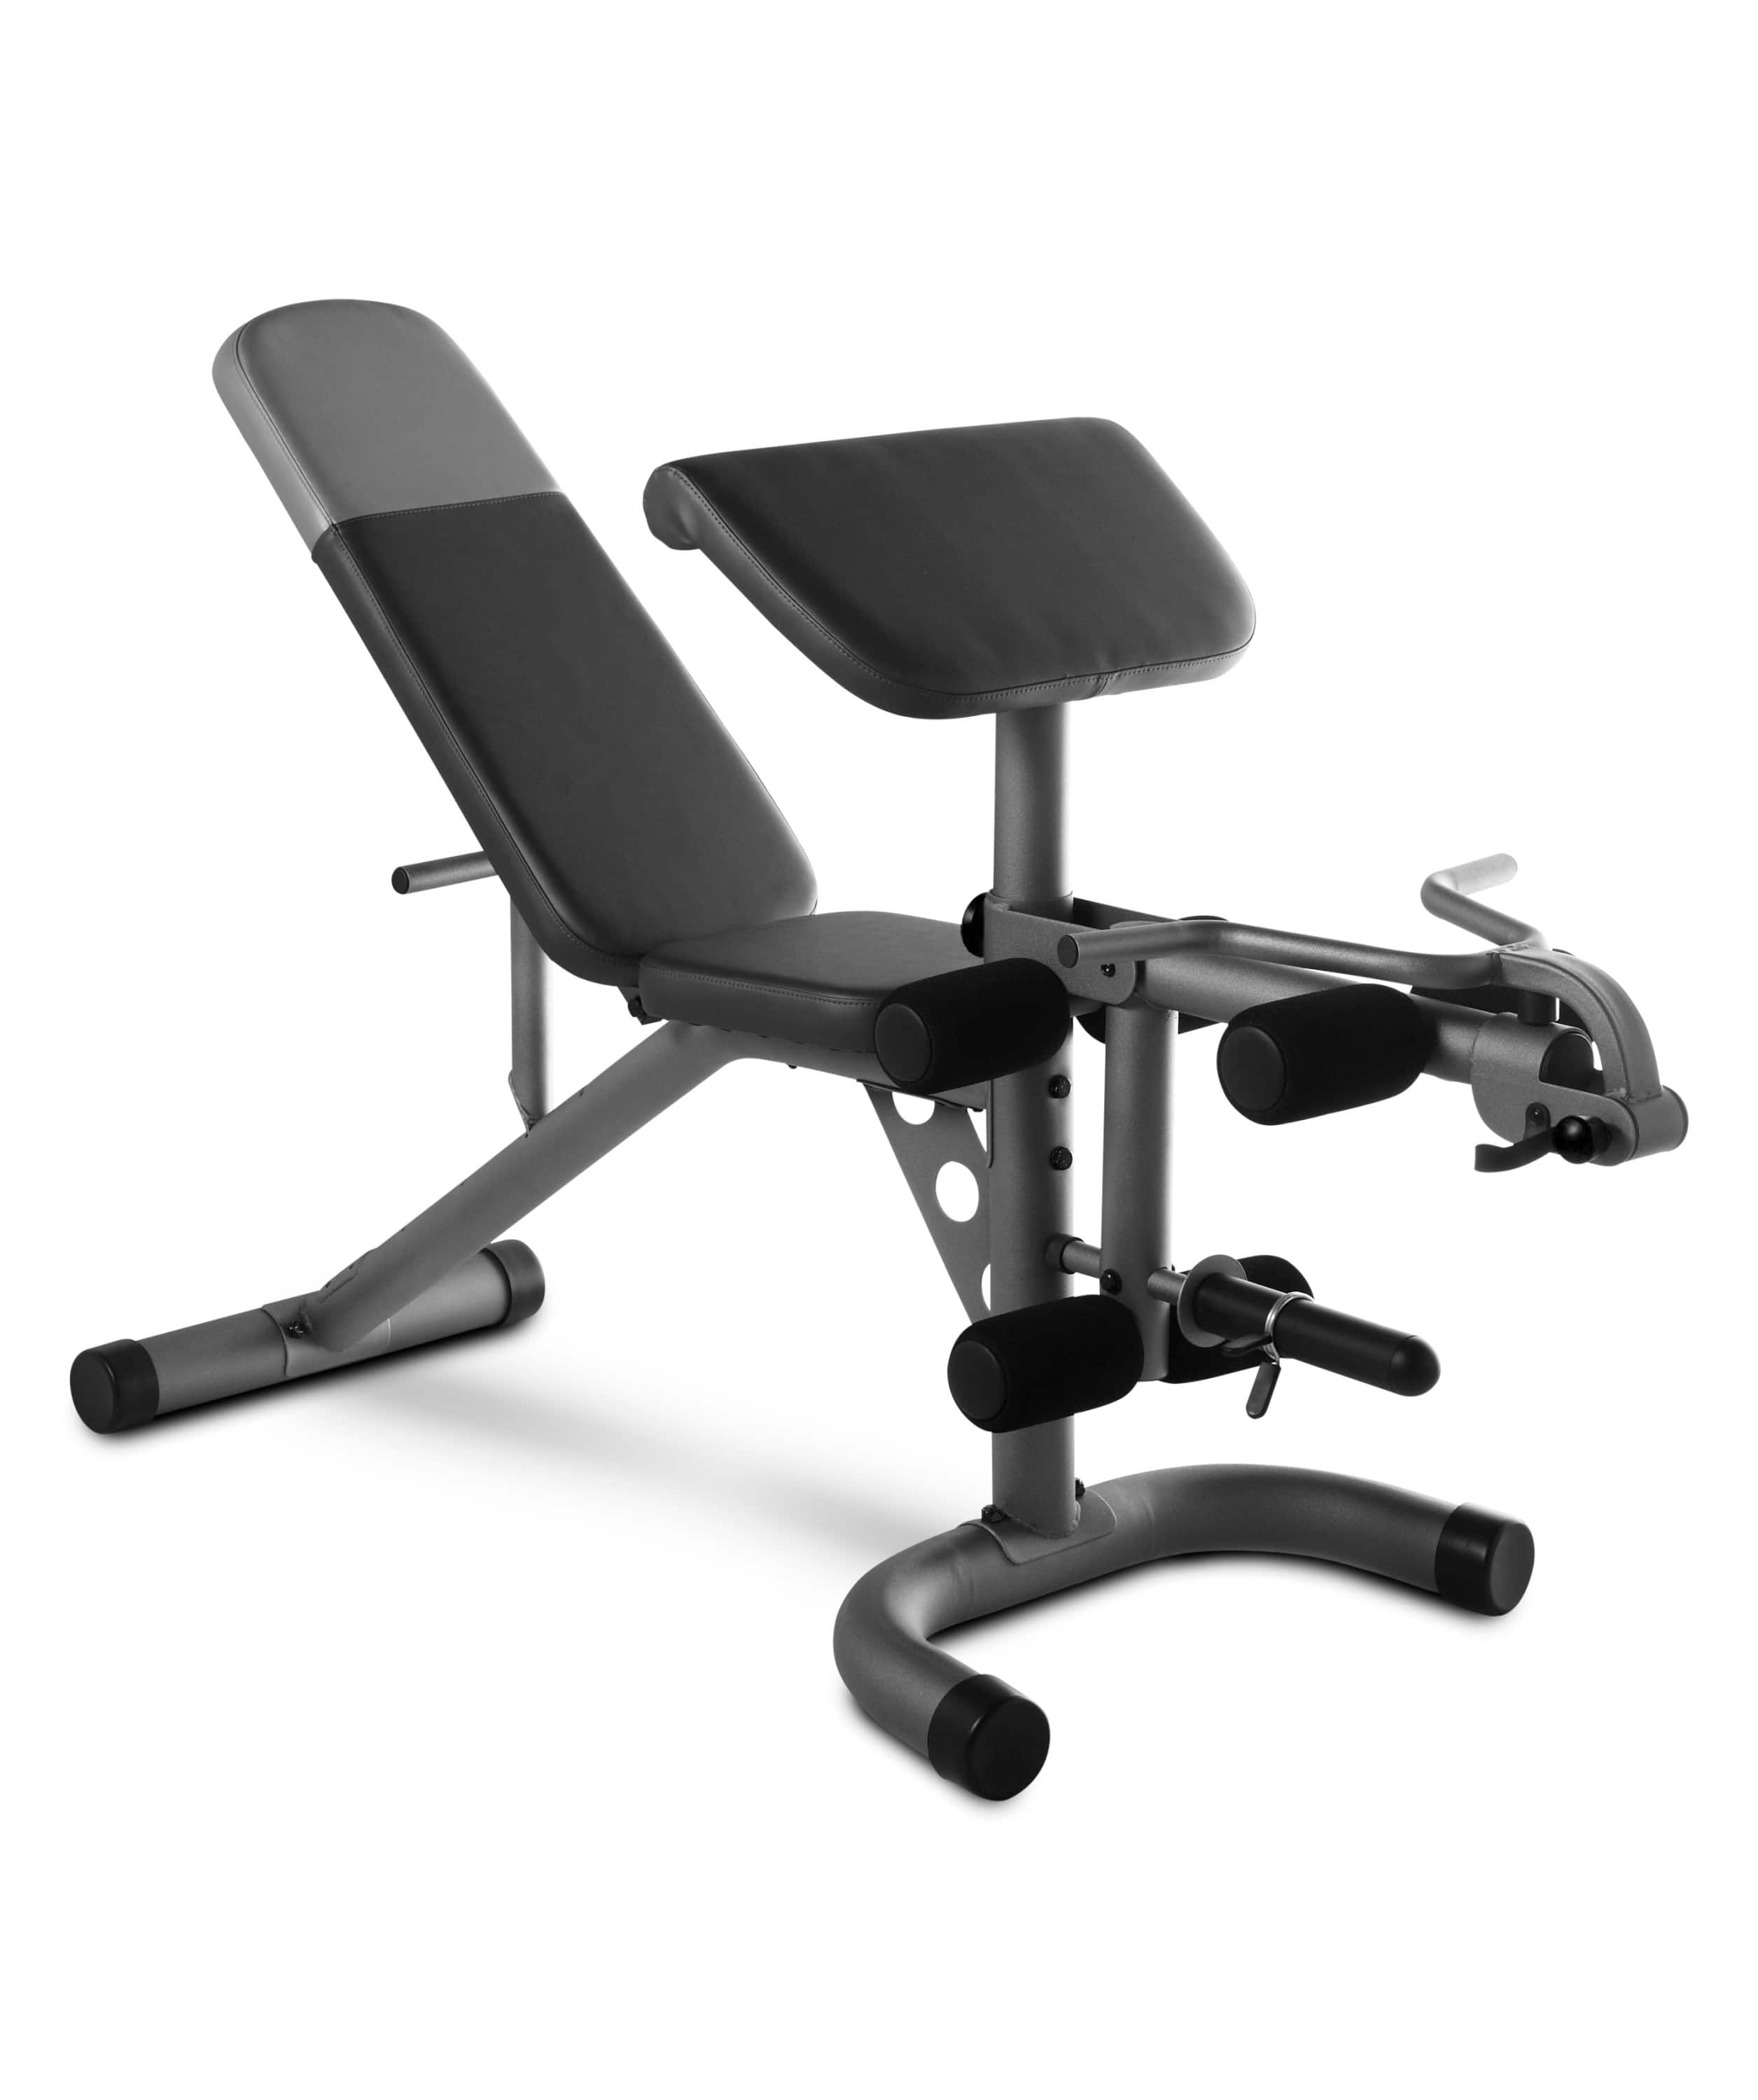 Weider XRS 20 Adjustable Olympic Bench with Removable Preacher Pad $97 at Walmart -YMMV